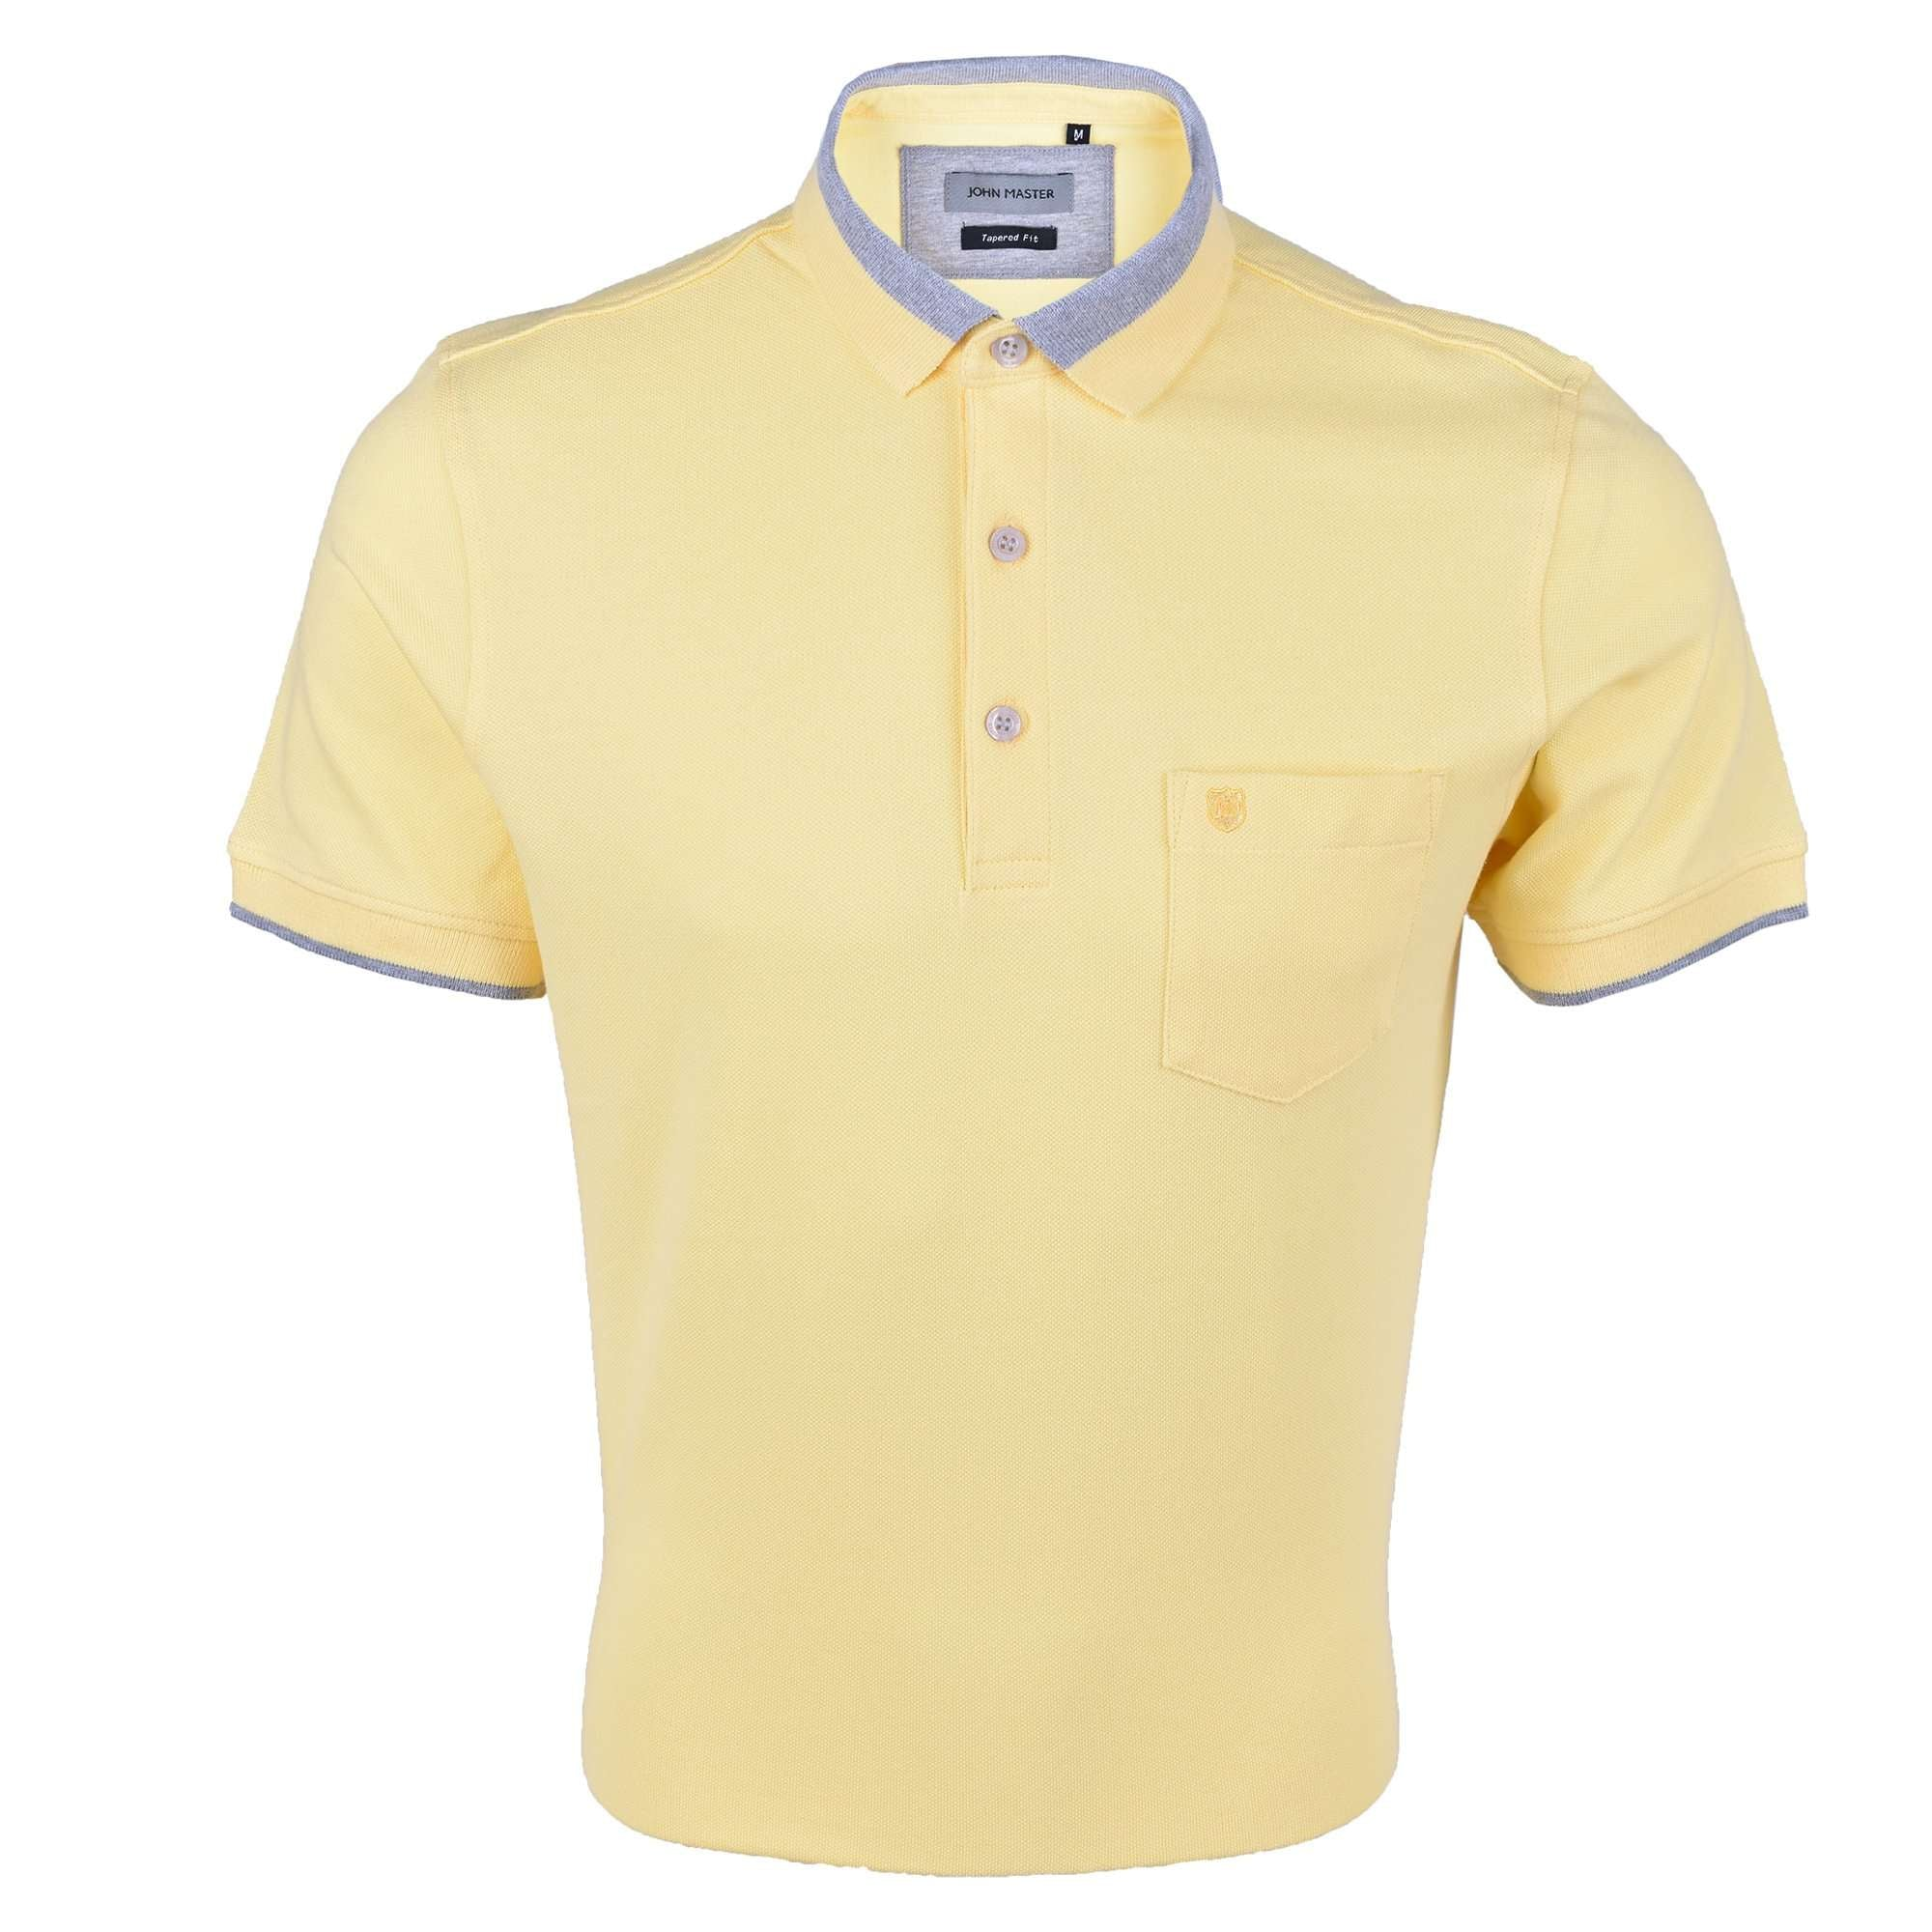 John Master Men Casual Tapered fit Polo Tee Yellow 8287009-Y5 : Buy John Master online at CMG.MY